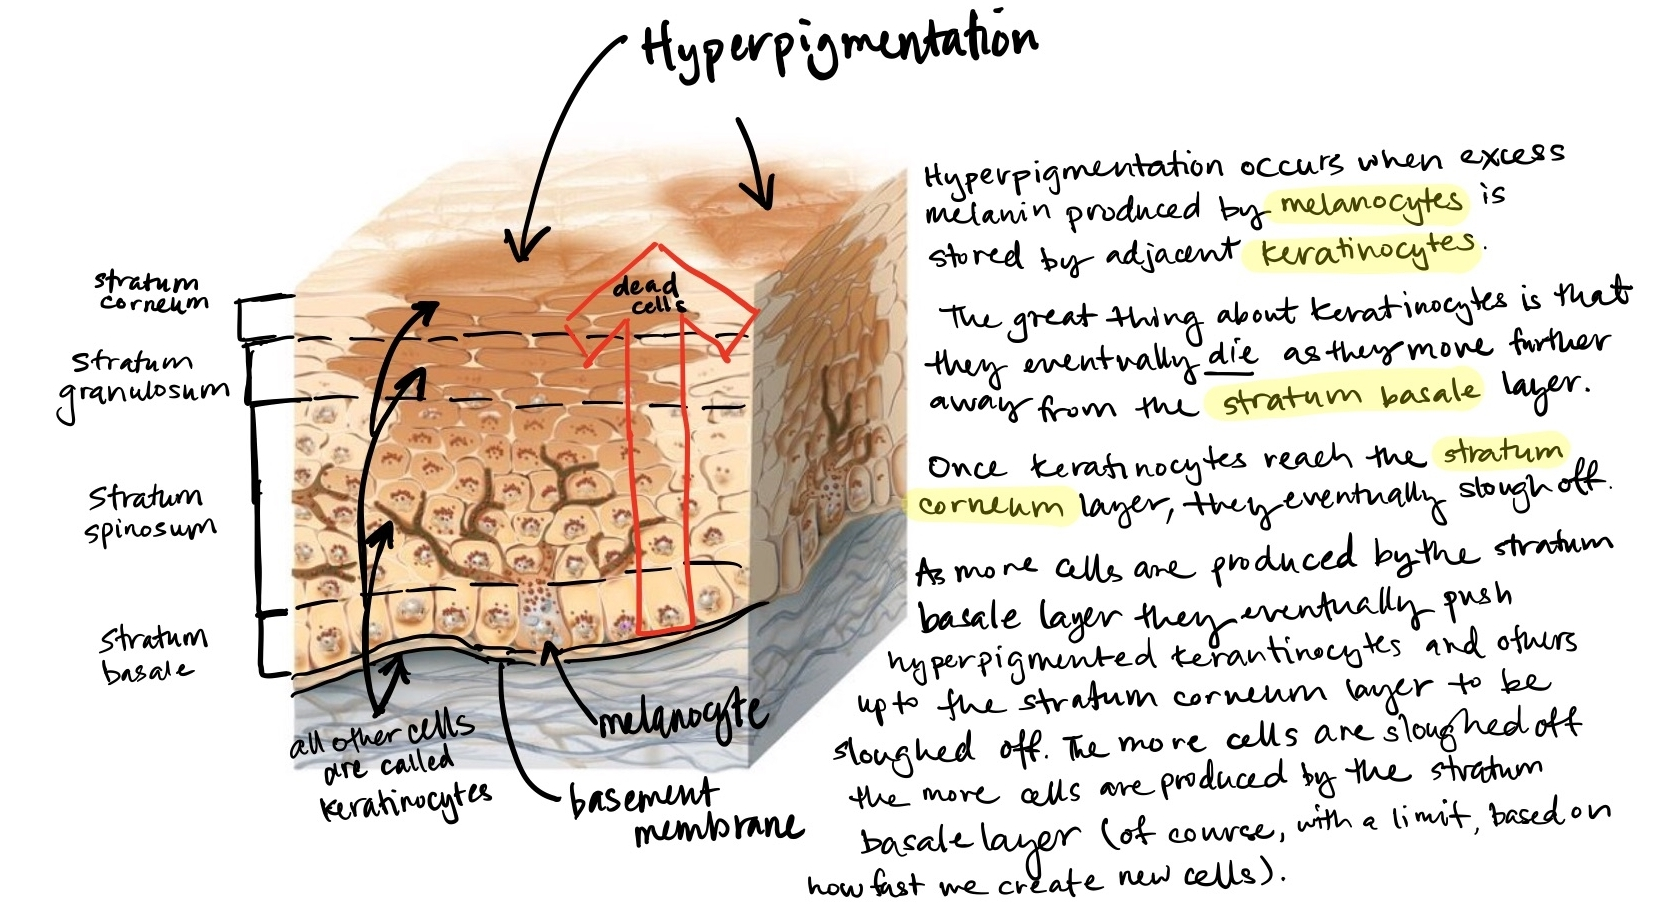 Hyperpigmentation usually fades as keratinocytes with excess melanin reach the stratum corneum layer and slough off. As old cells slough off the stratum corneum layer of the skin, new cells are produced by the stratum basale layer. The stratum basale layer holds skin stem cells that are responsible for producing new cells and melanocytes that release melanin that protects skin cell's DNA from sun exposure. The key is to balance shedding enough dead skin cells to stimulate new cell growth whilst still maintain enough dead skin cells in the stratum corneum to help aid your skin's ability to retain water.